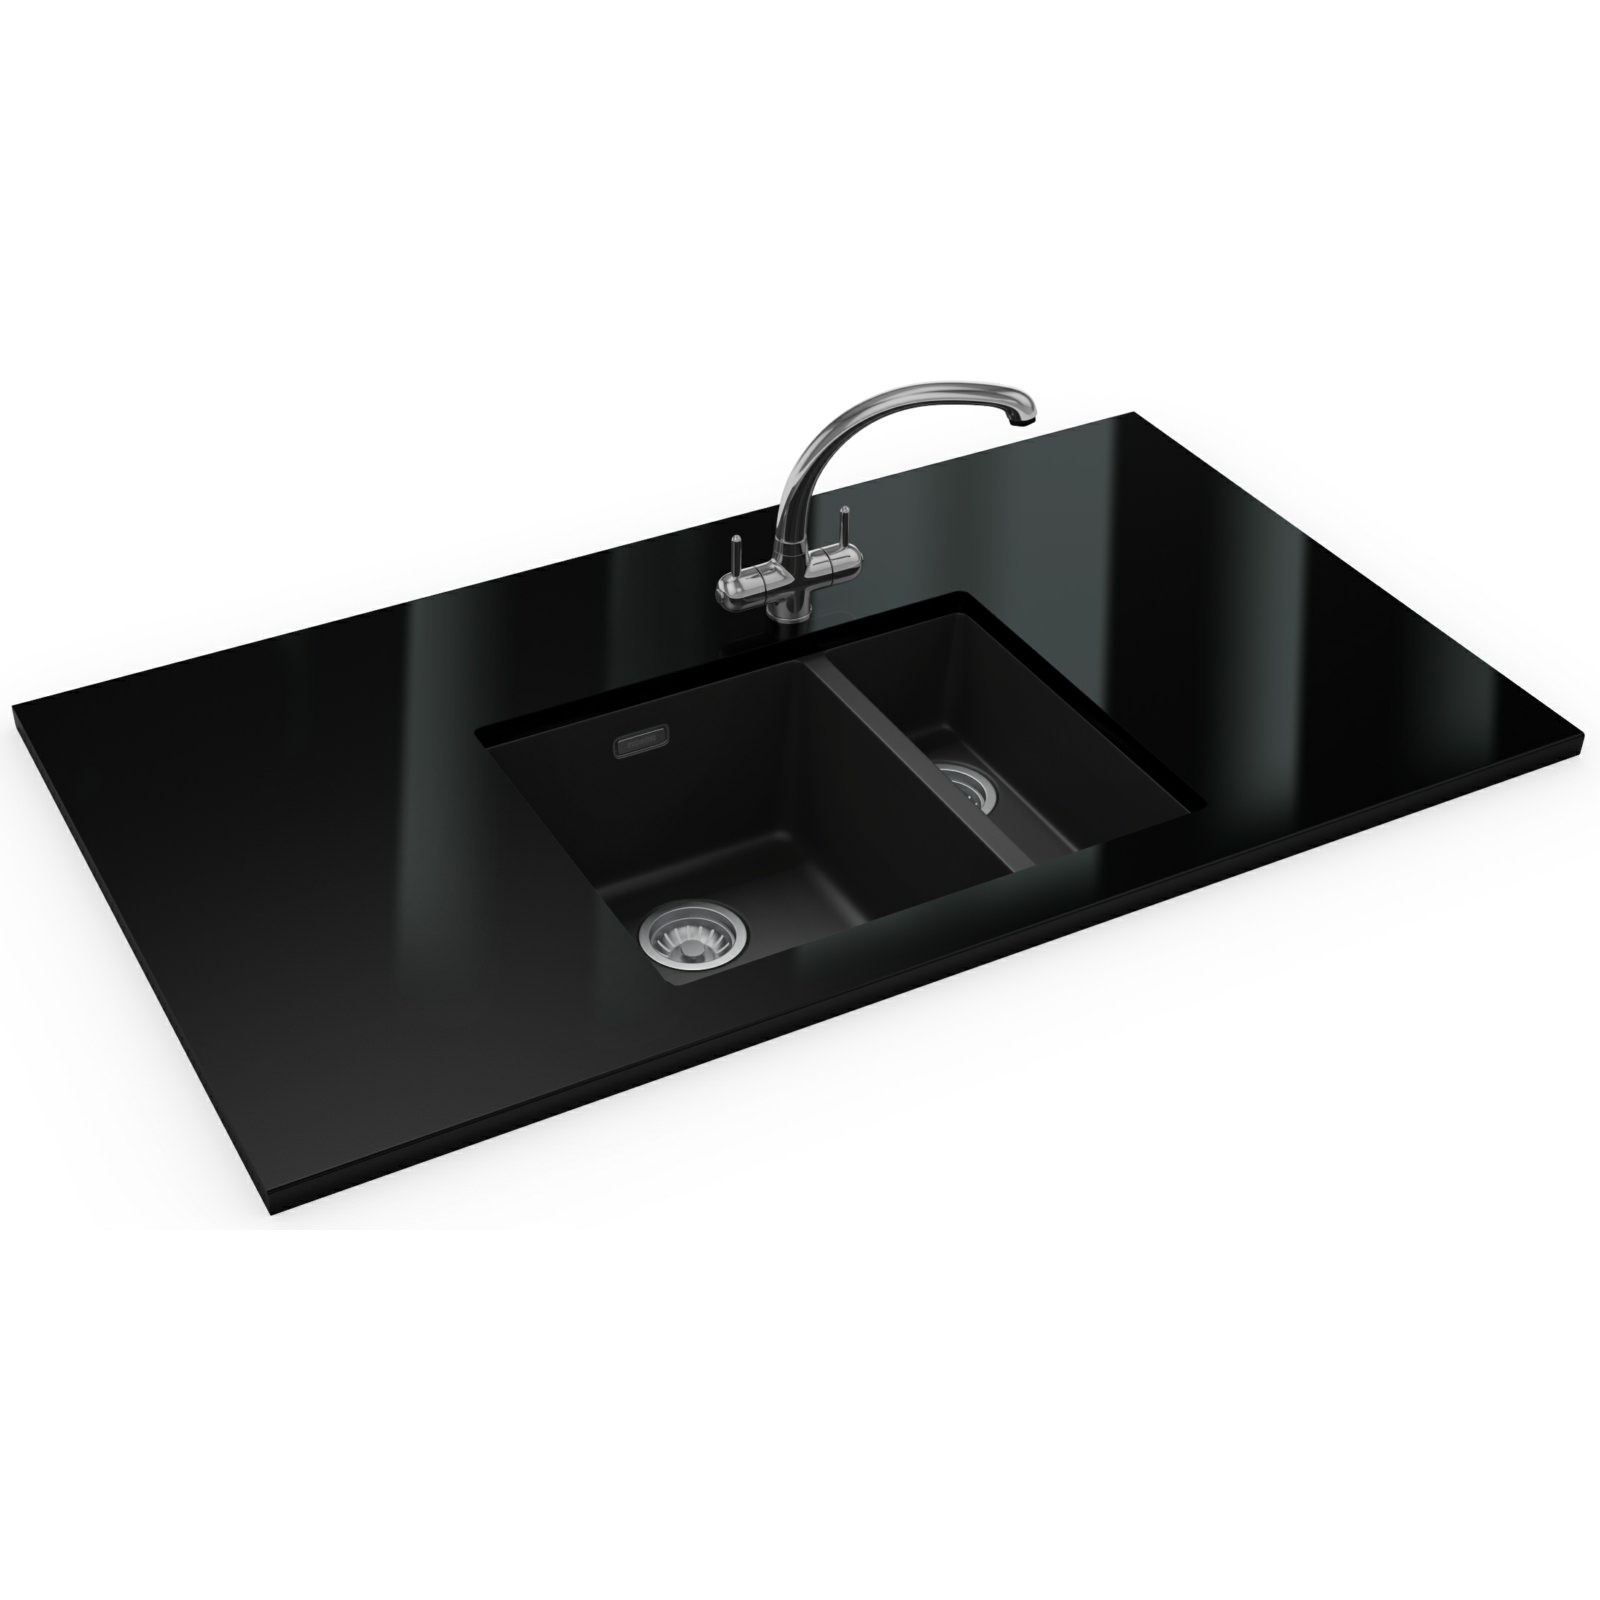 Franke Black Kitchen Sink: Franke Sirius Propack SID 160 Tectonite Carbon Black Sink